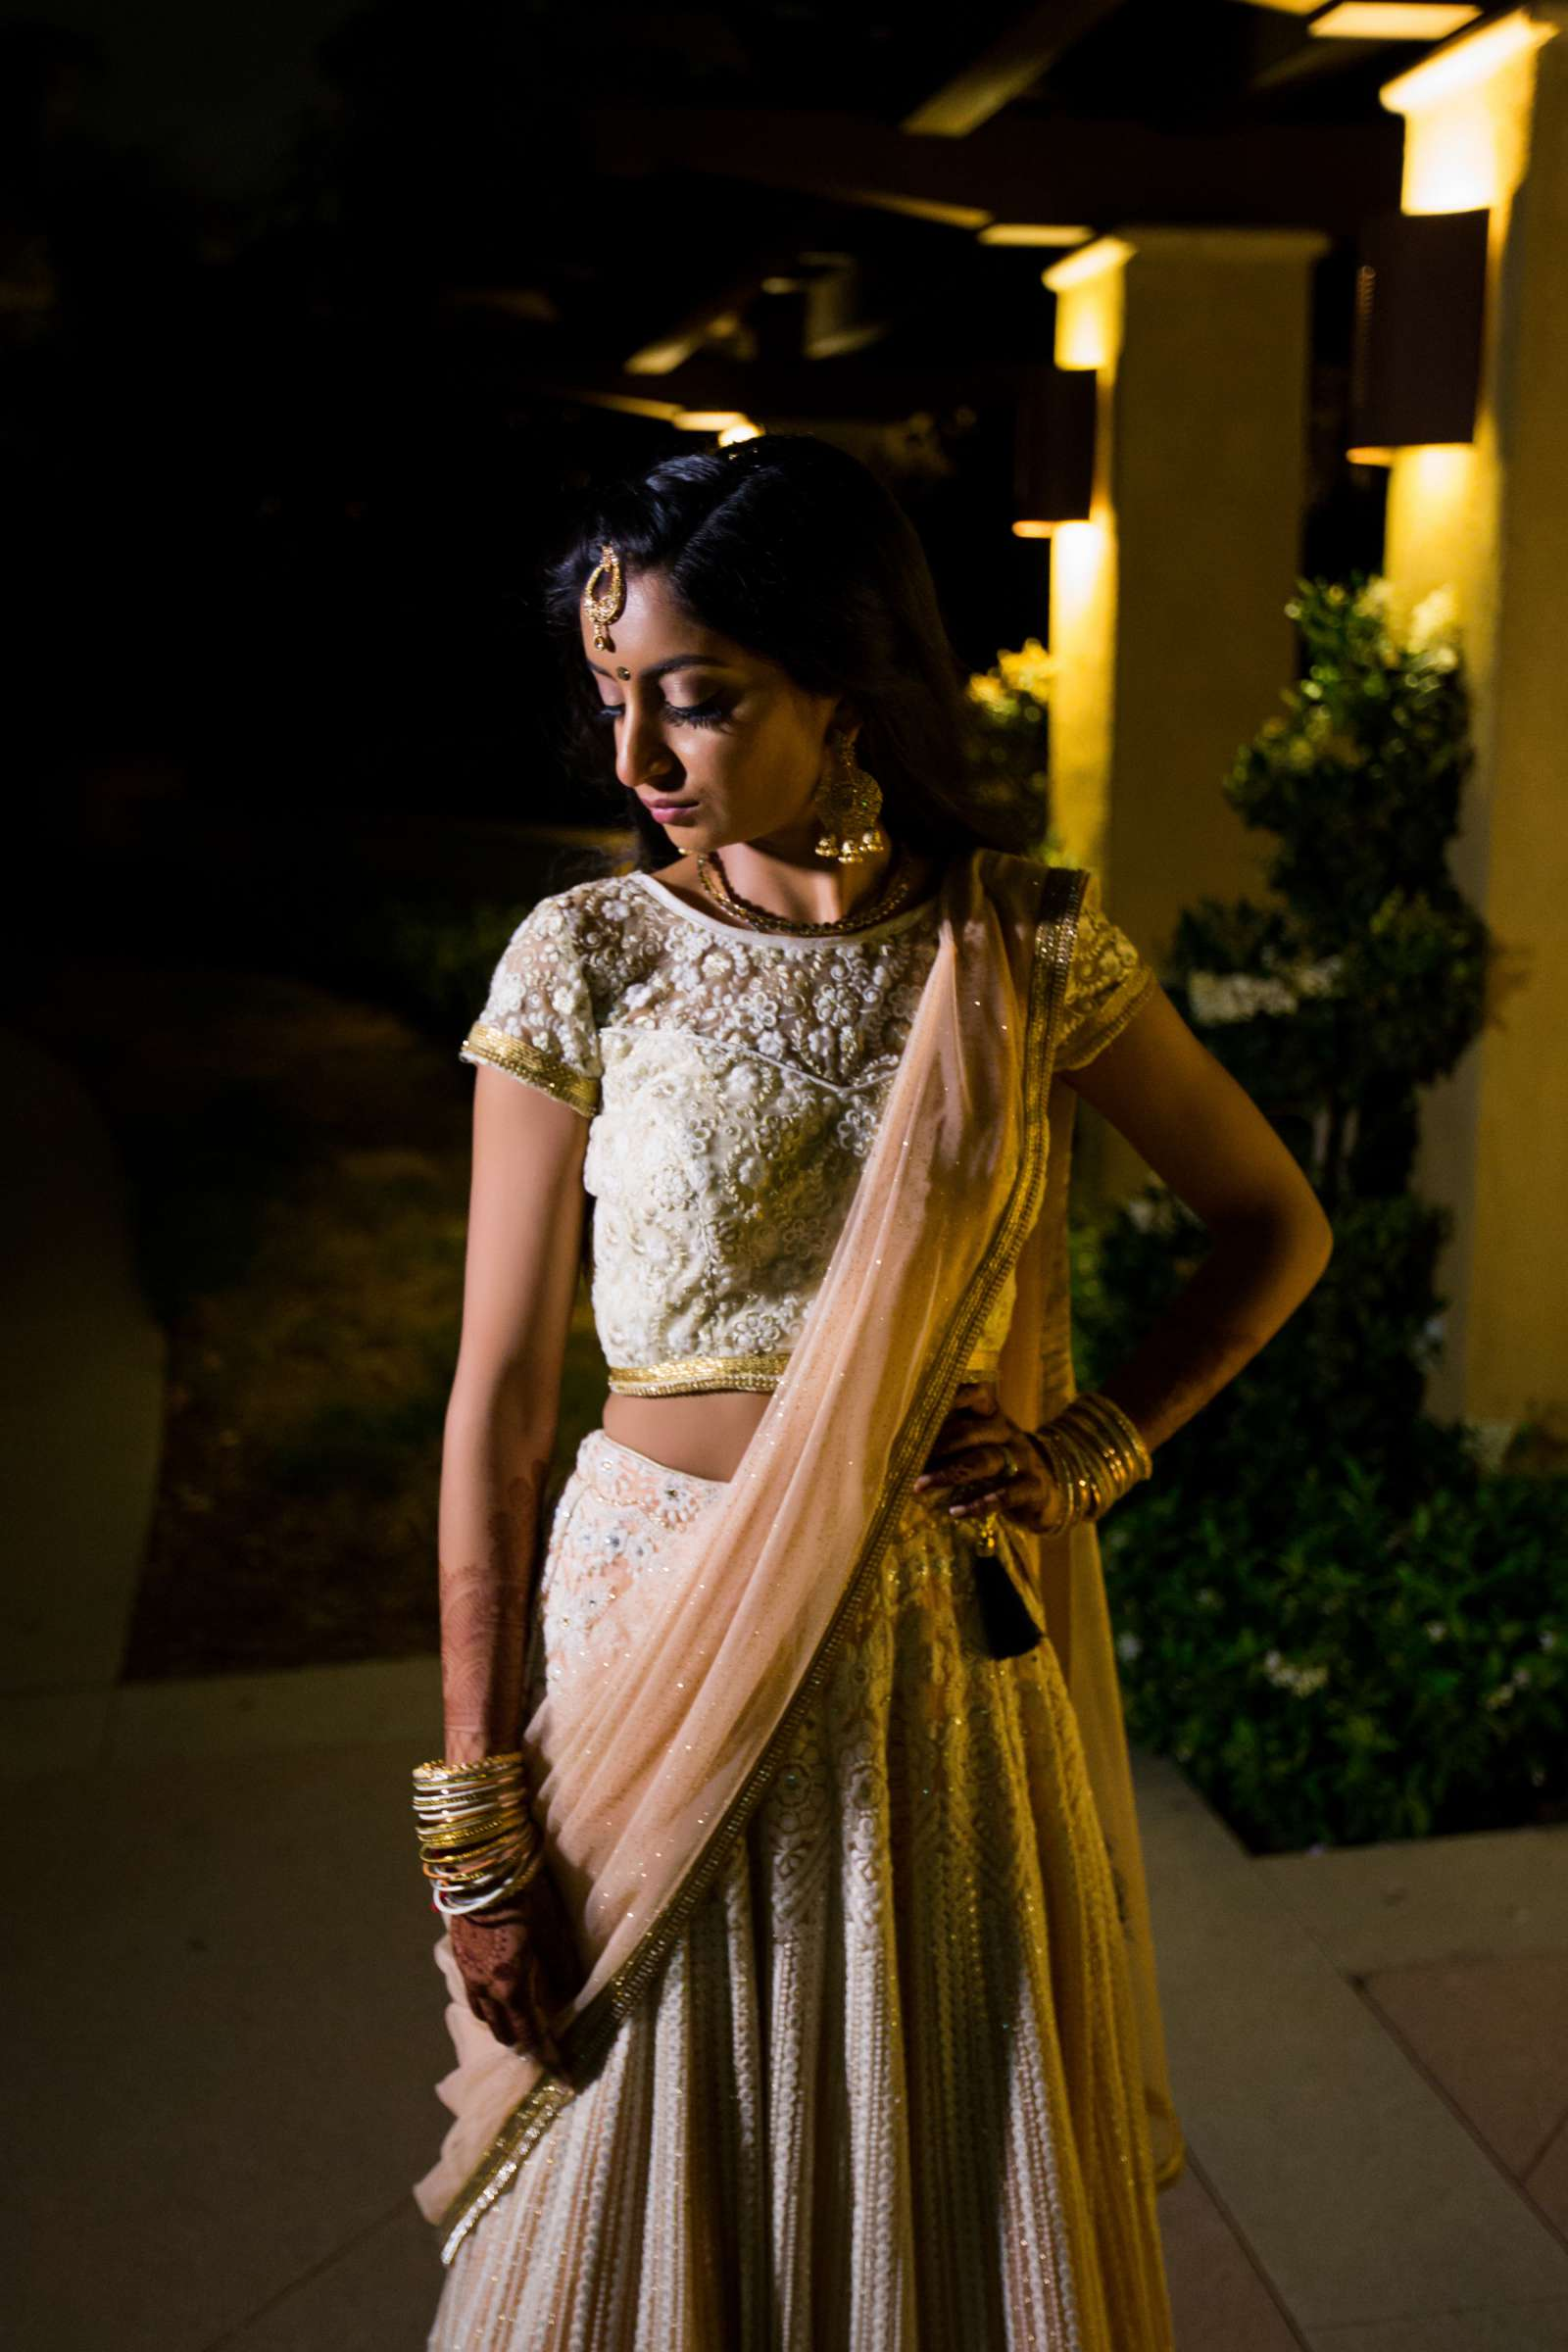 The Westin Carlsbad Resort and Spa Wedding coordinated by Shilpa Patel Events, Ami and Amit Wedding Photo #262 by True Photography